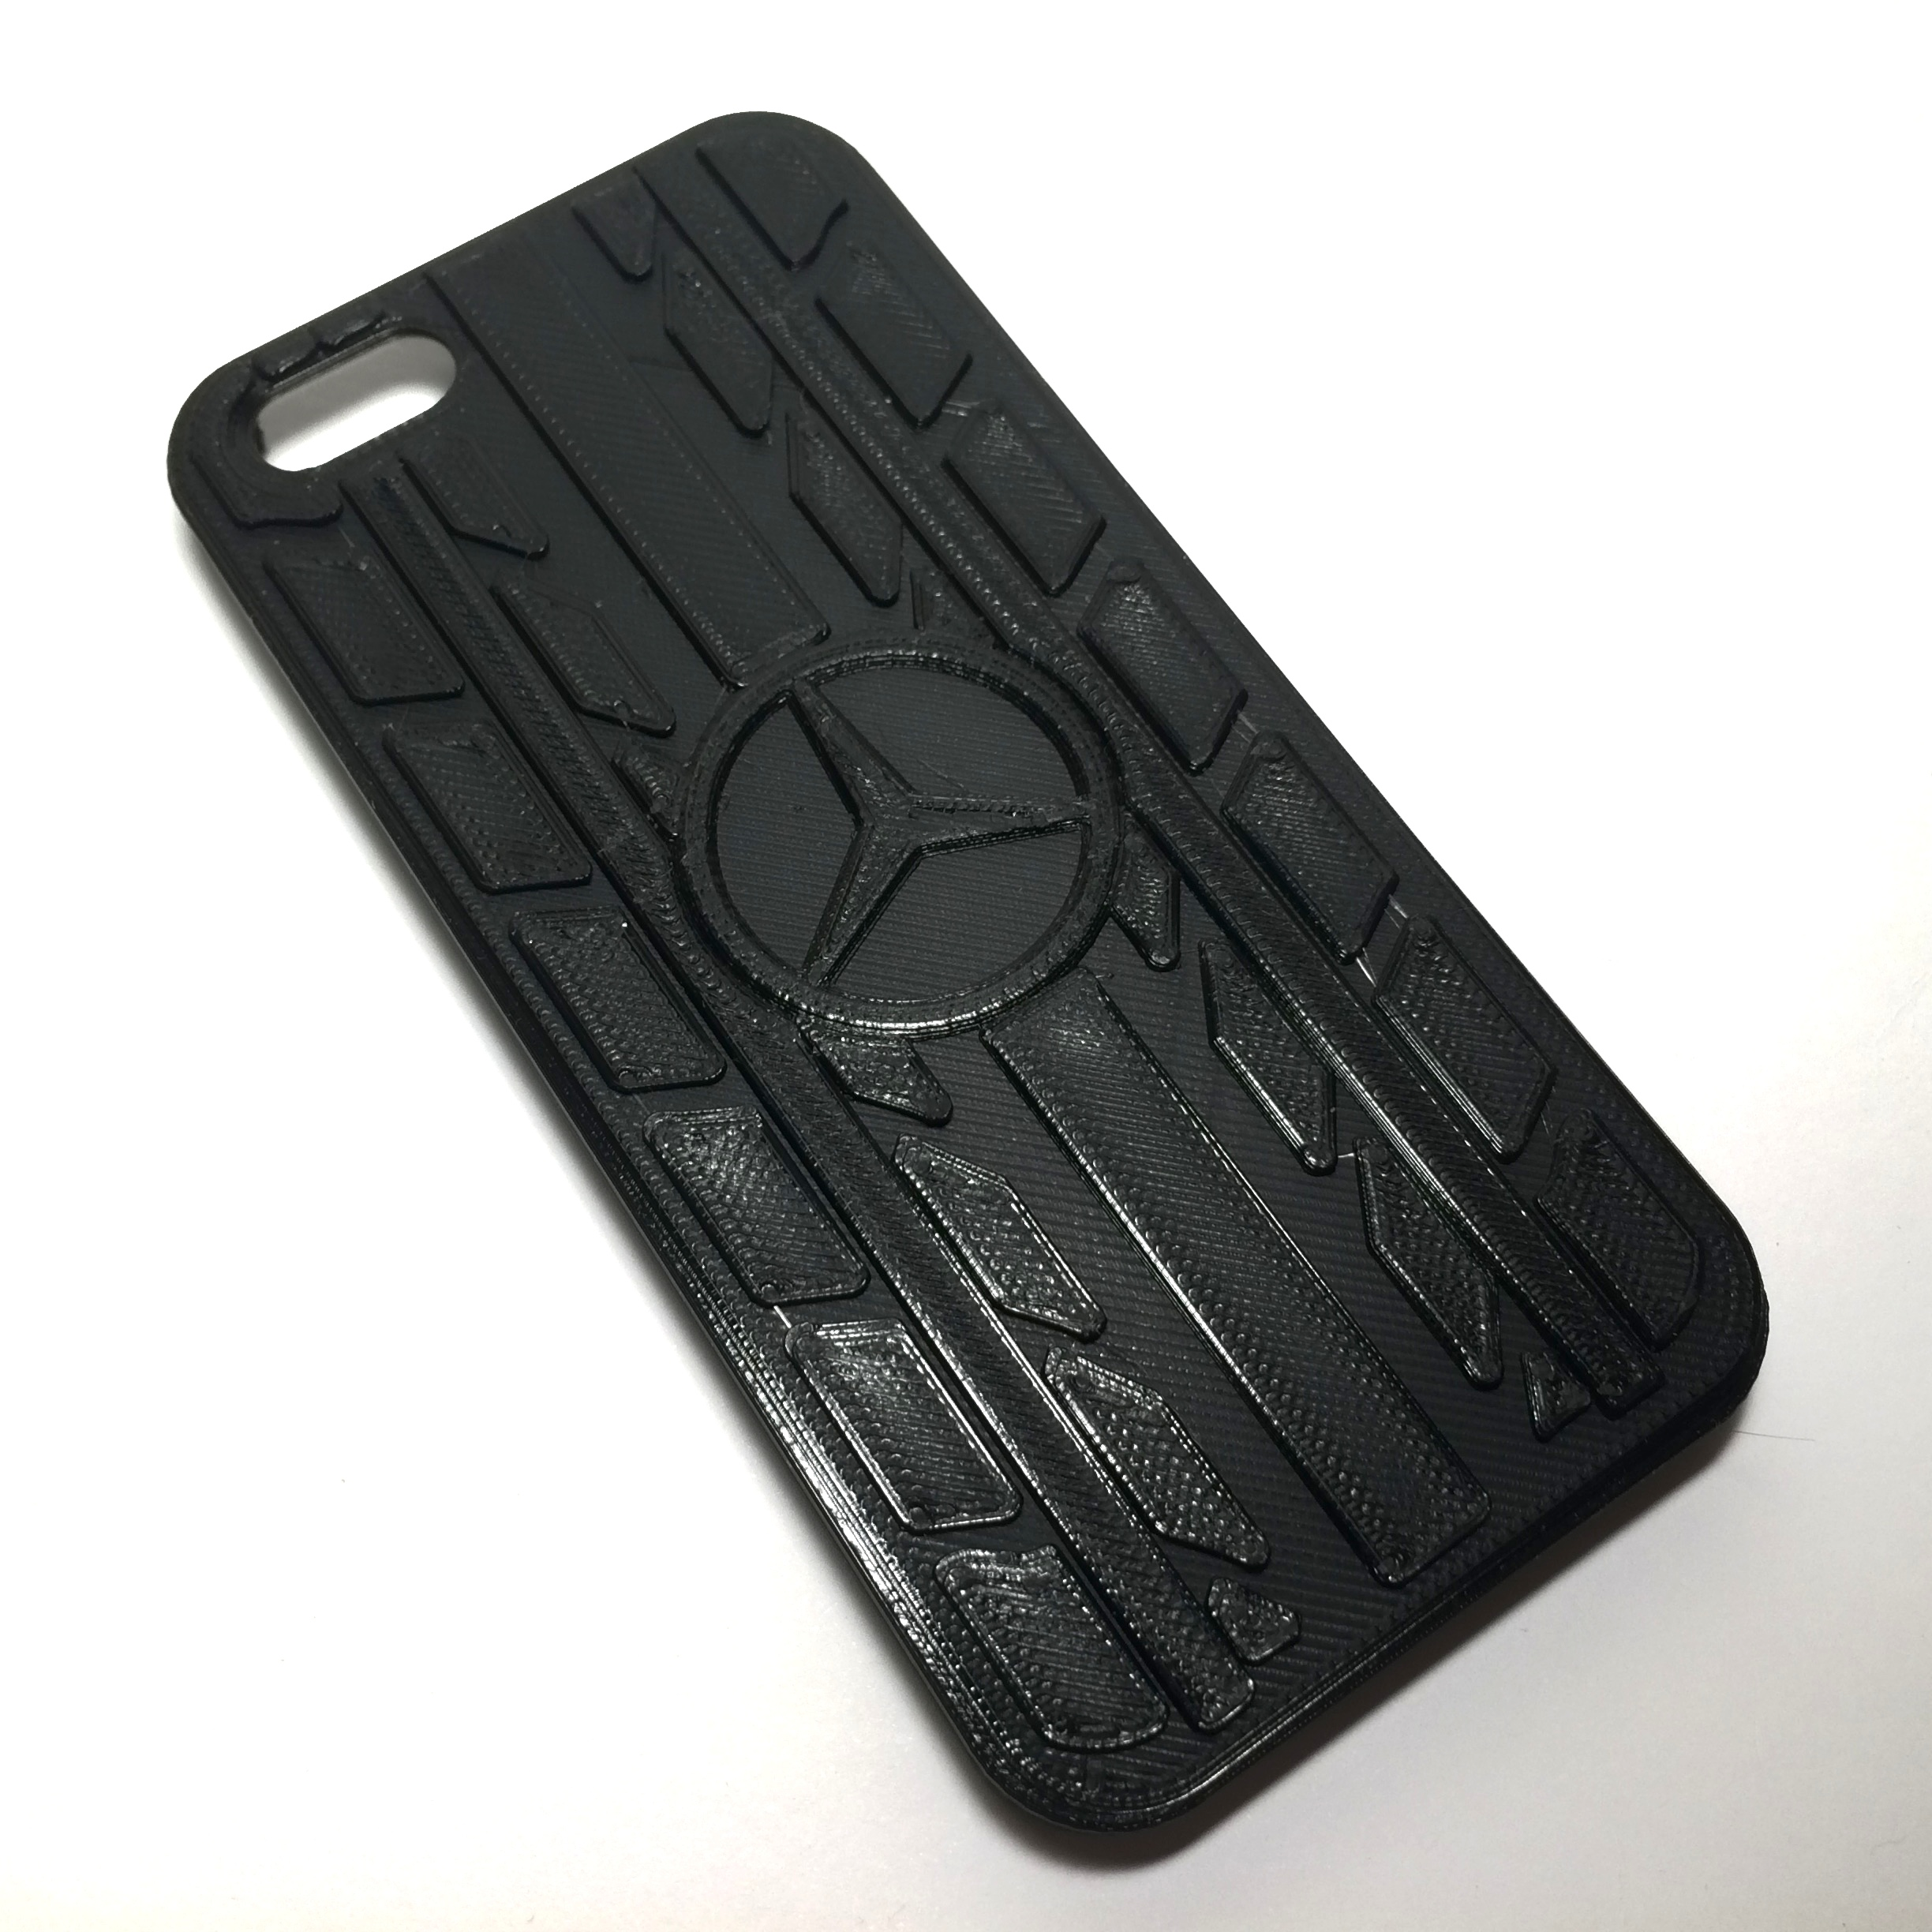 Mercedes AMG Petronas F1 Iphone 5/5s/SE Case image